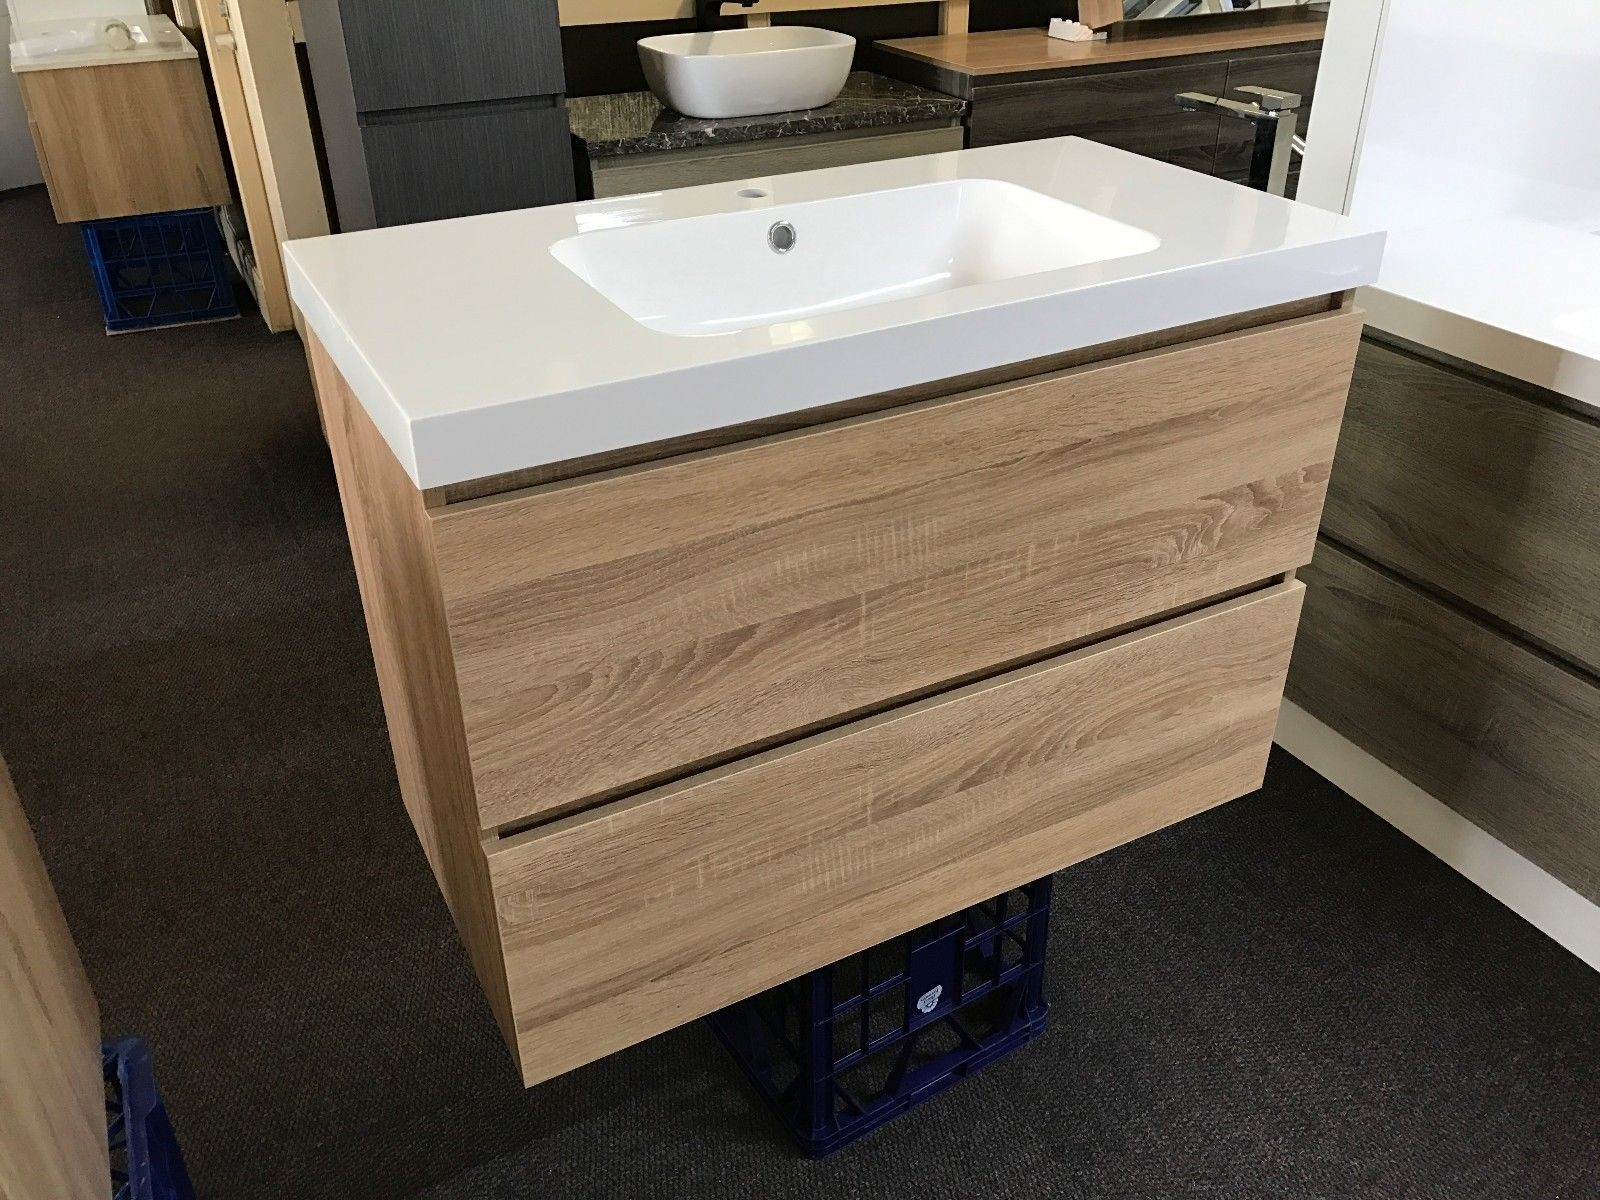 Fantastic Over The Summer, My Husbands Brother And Wife Were Remodeling Their Bathroom They Were Trying To Take  Since We Were Painting The Vanity, The Difference In The Woodgrain And Color Of The Wood Didnt Matter Plus, It Saved A Ton Of